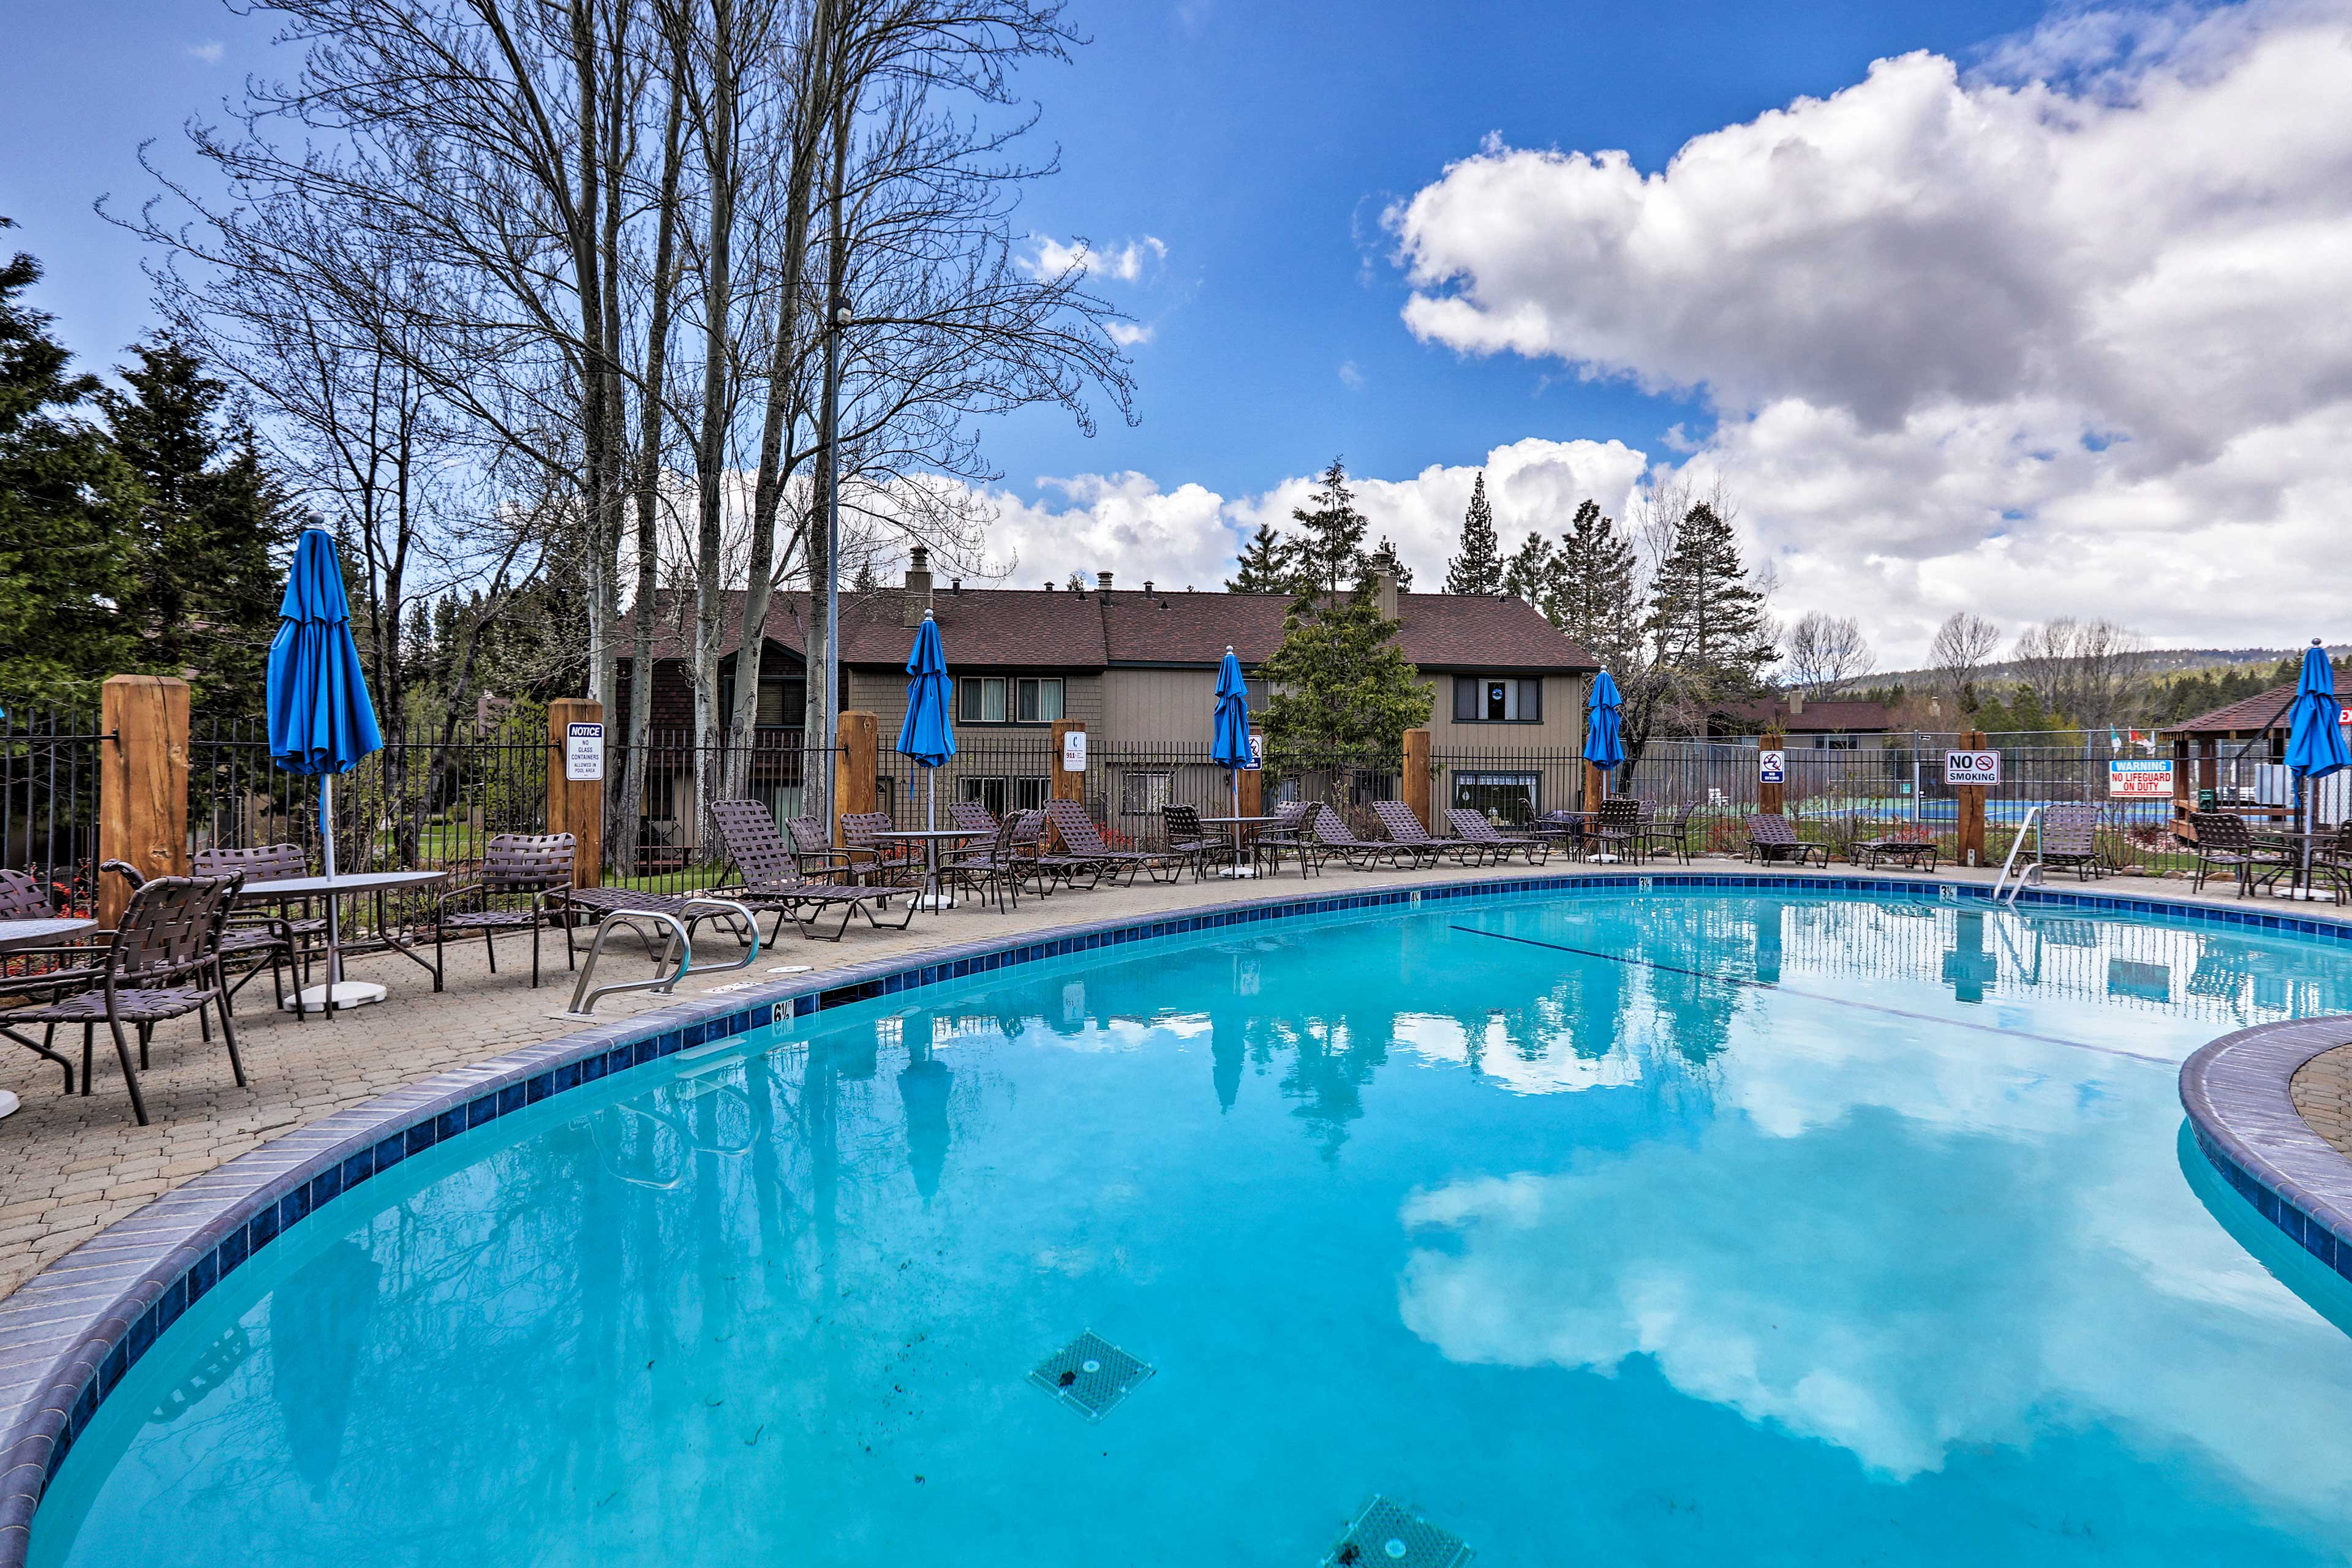 The home is located at Lake Forest Glen and has access to pools!